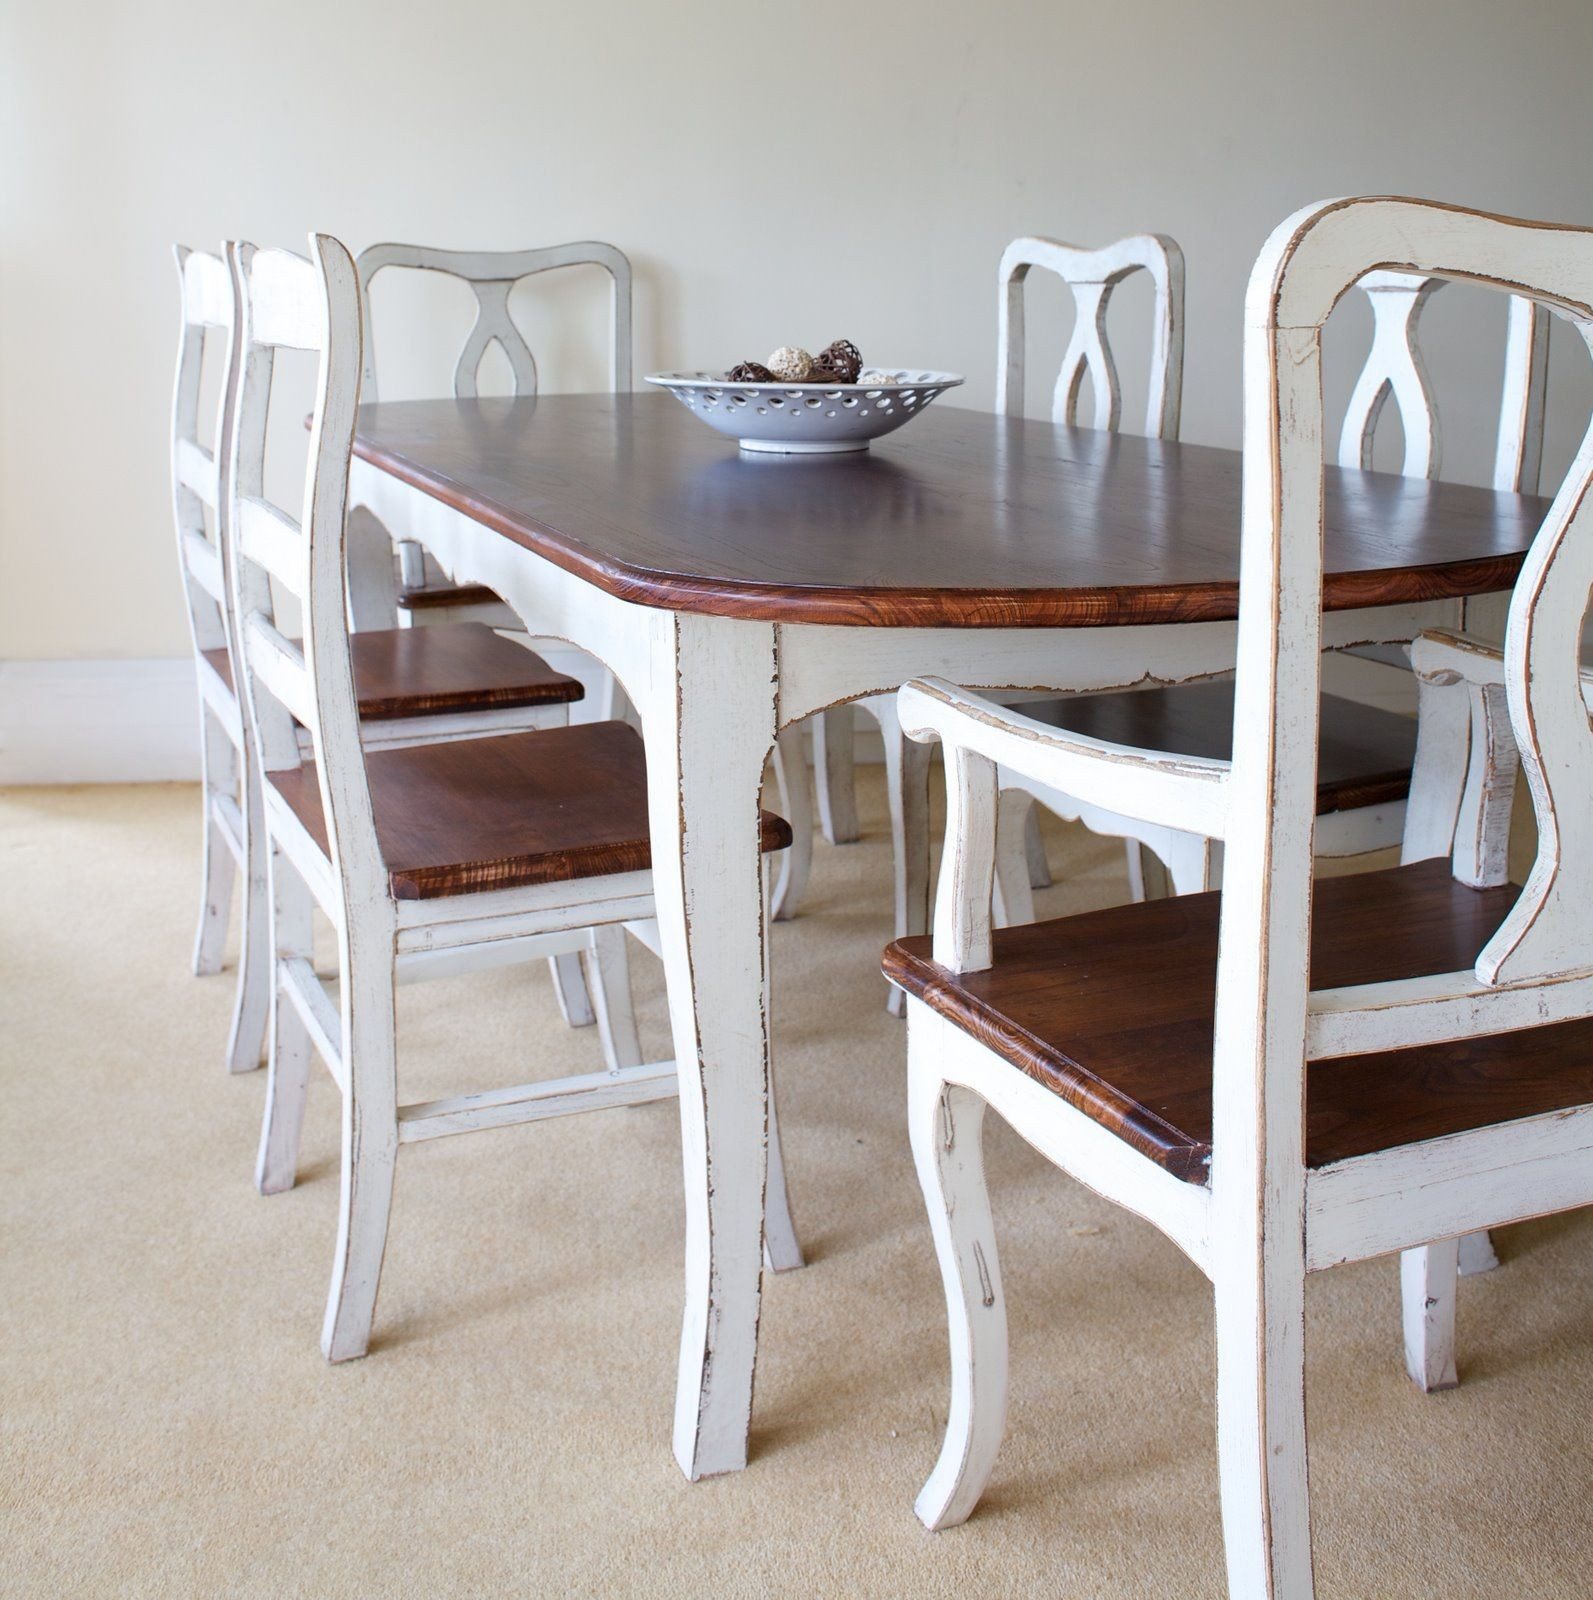 Furniture Palejay Diy Shabby Chic Dining Table Part Shabby Chic